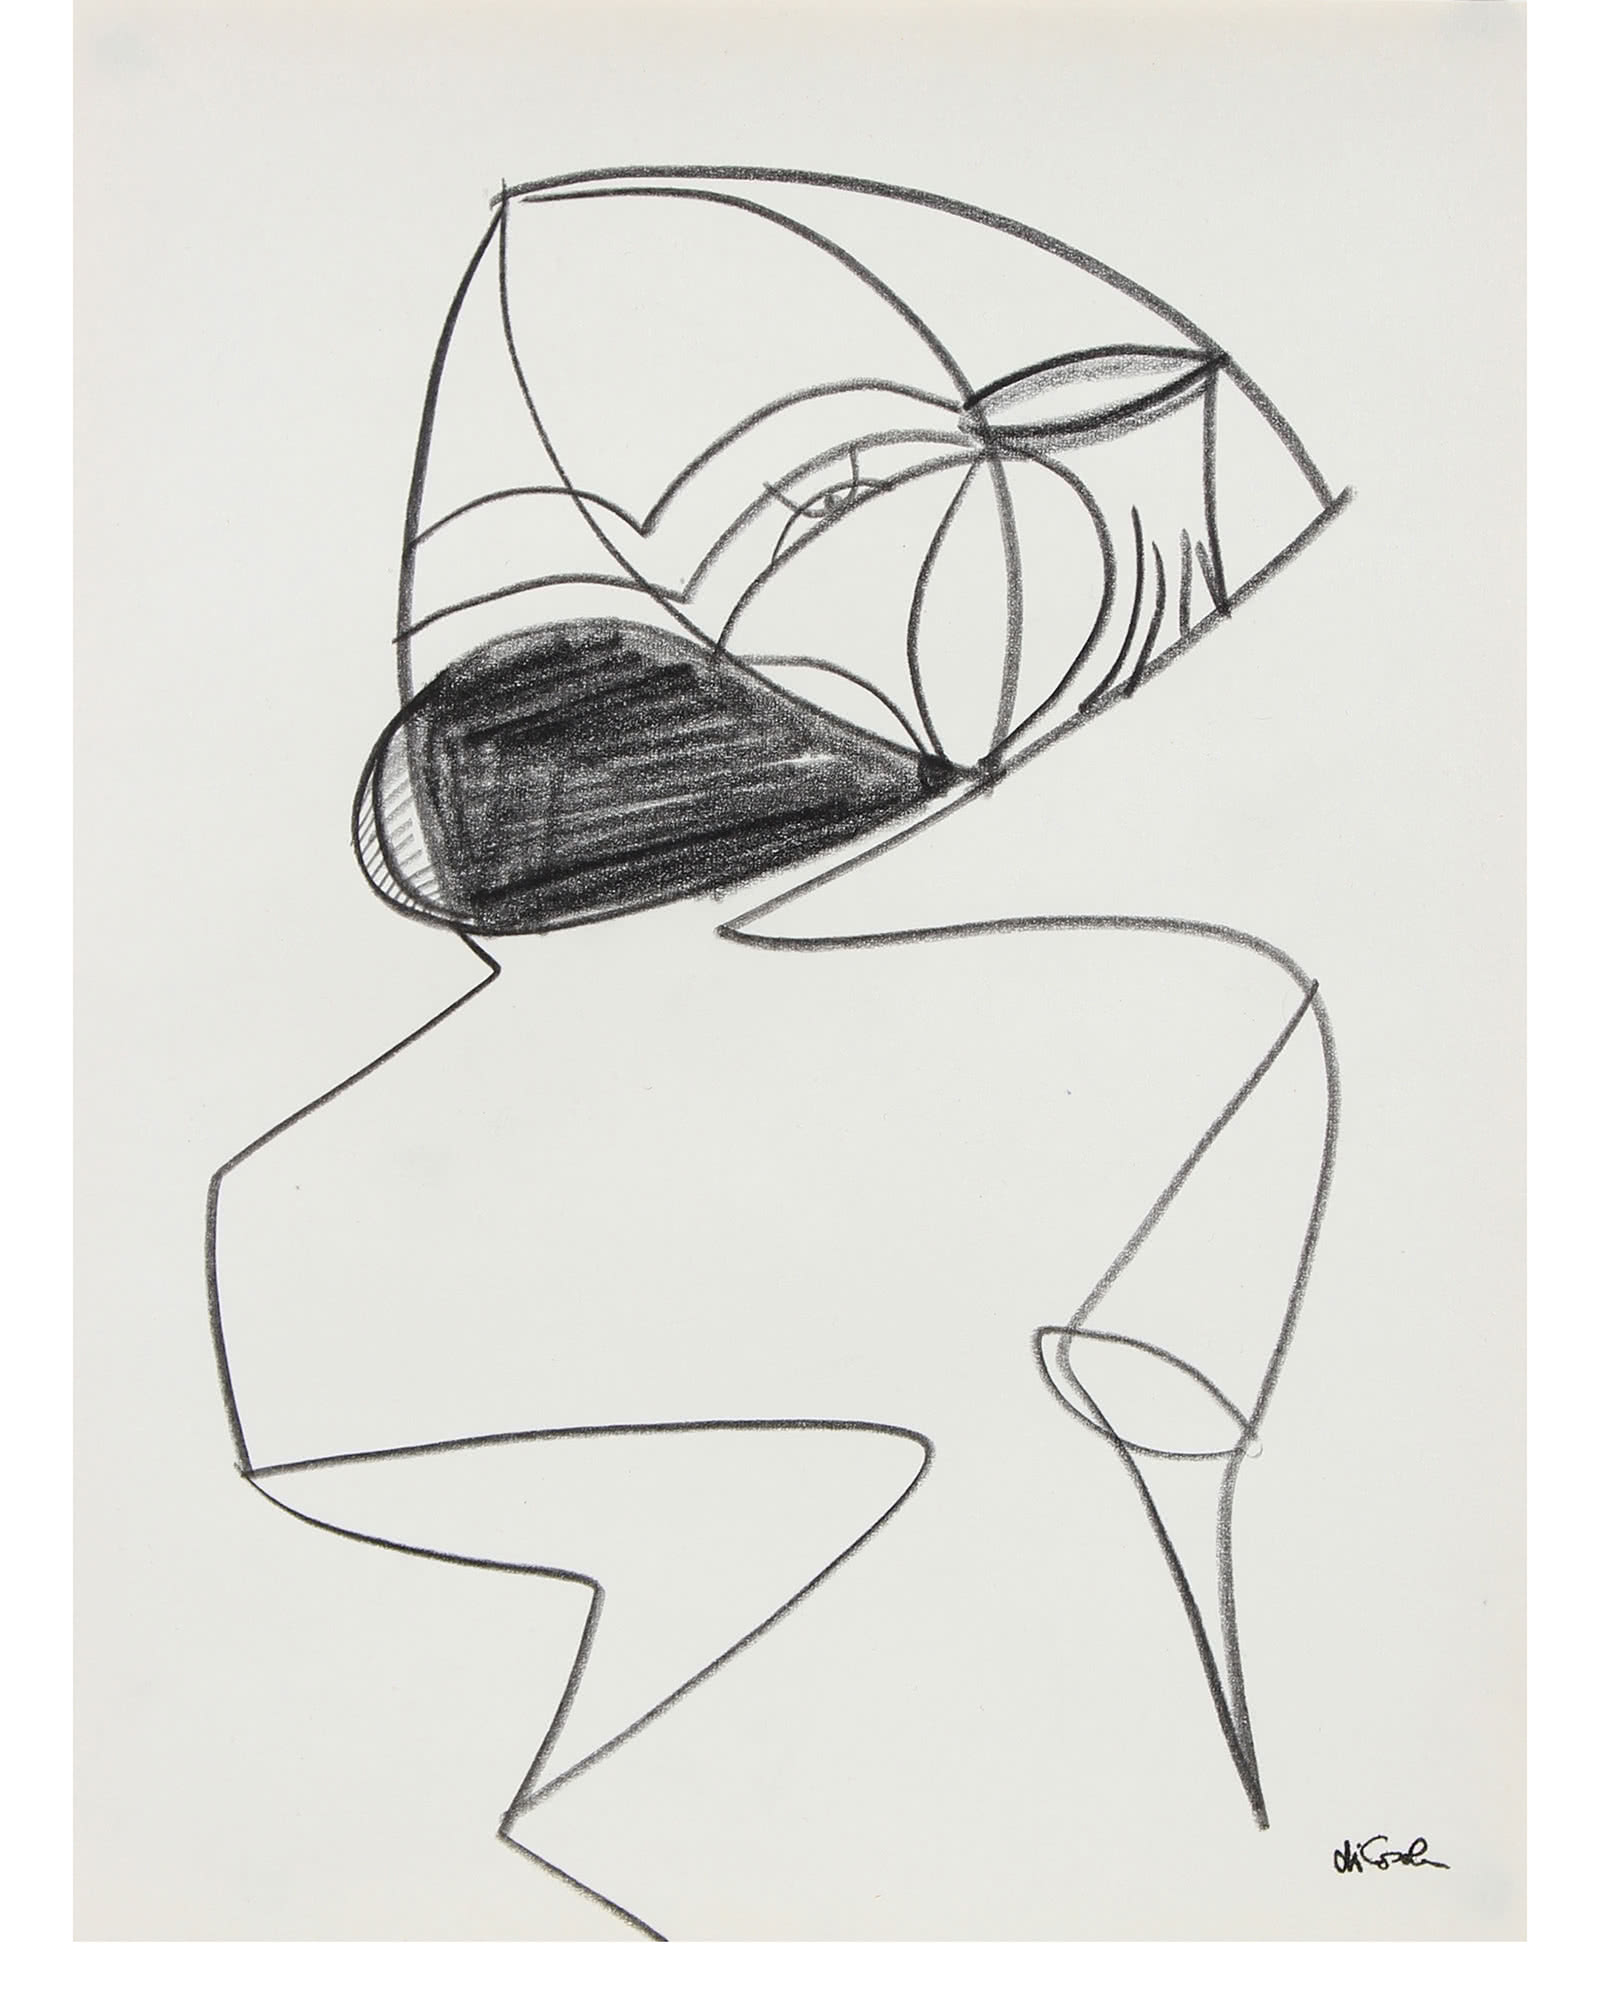 """Modernist Abstract Line Drawing"" by Michael di Cosola,"